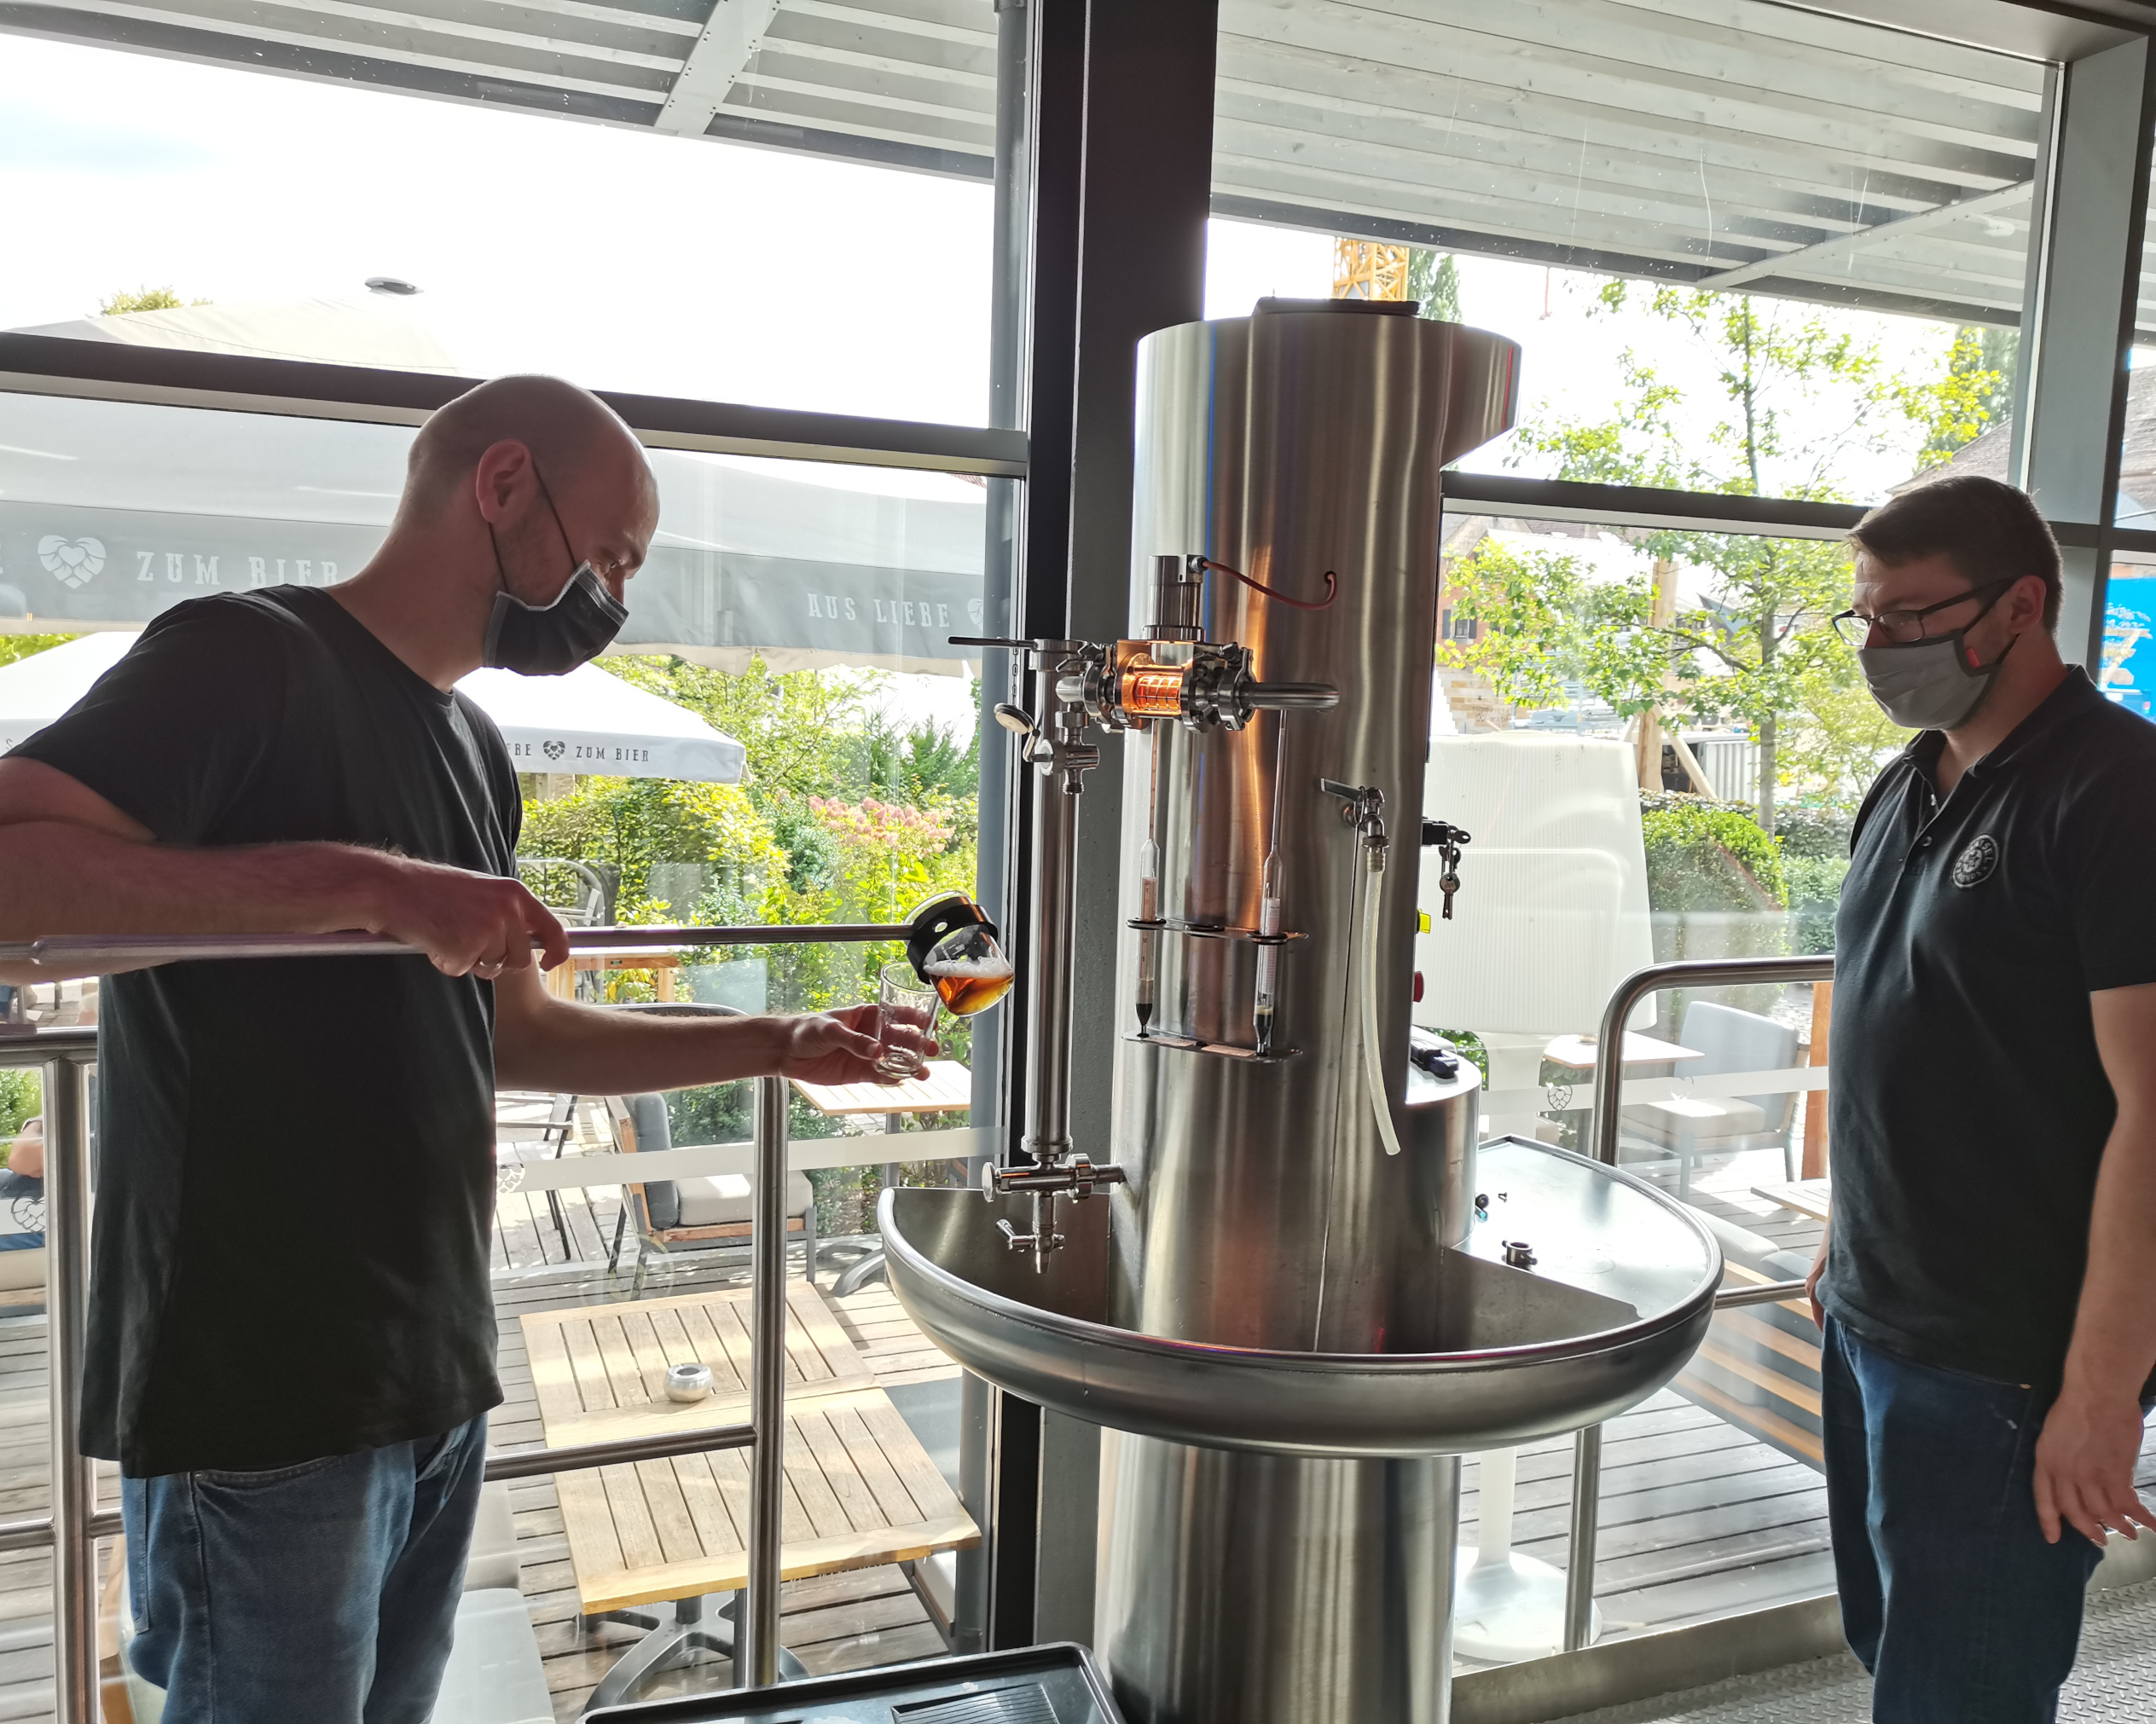 Christoph Wolfrum and master brewer Markus Briemle take a wort sample in the brewhouse